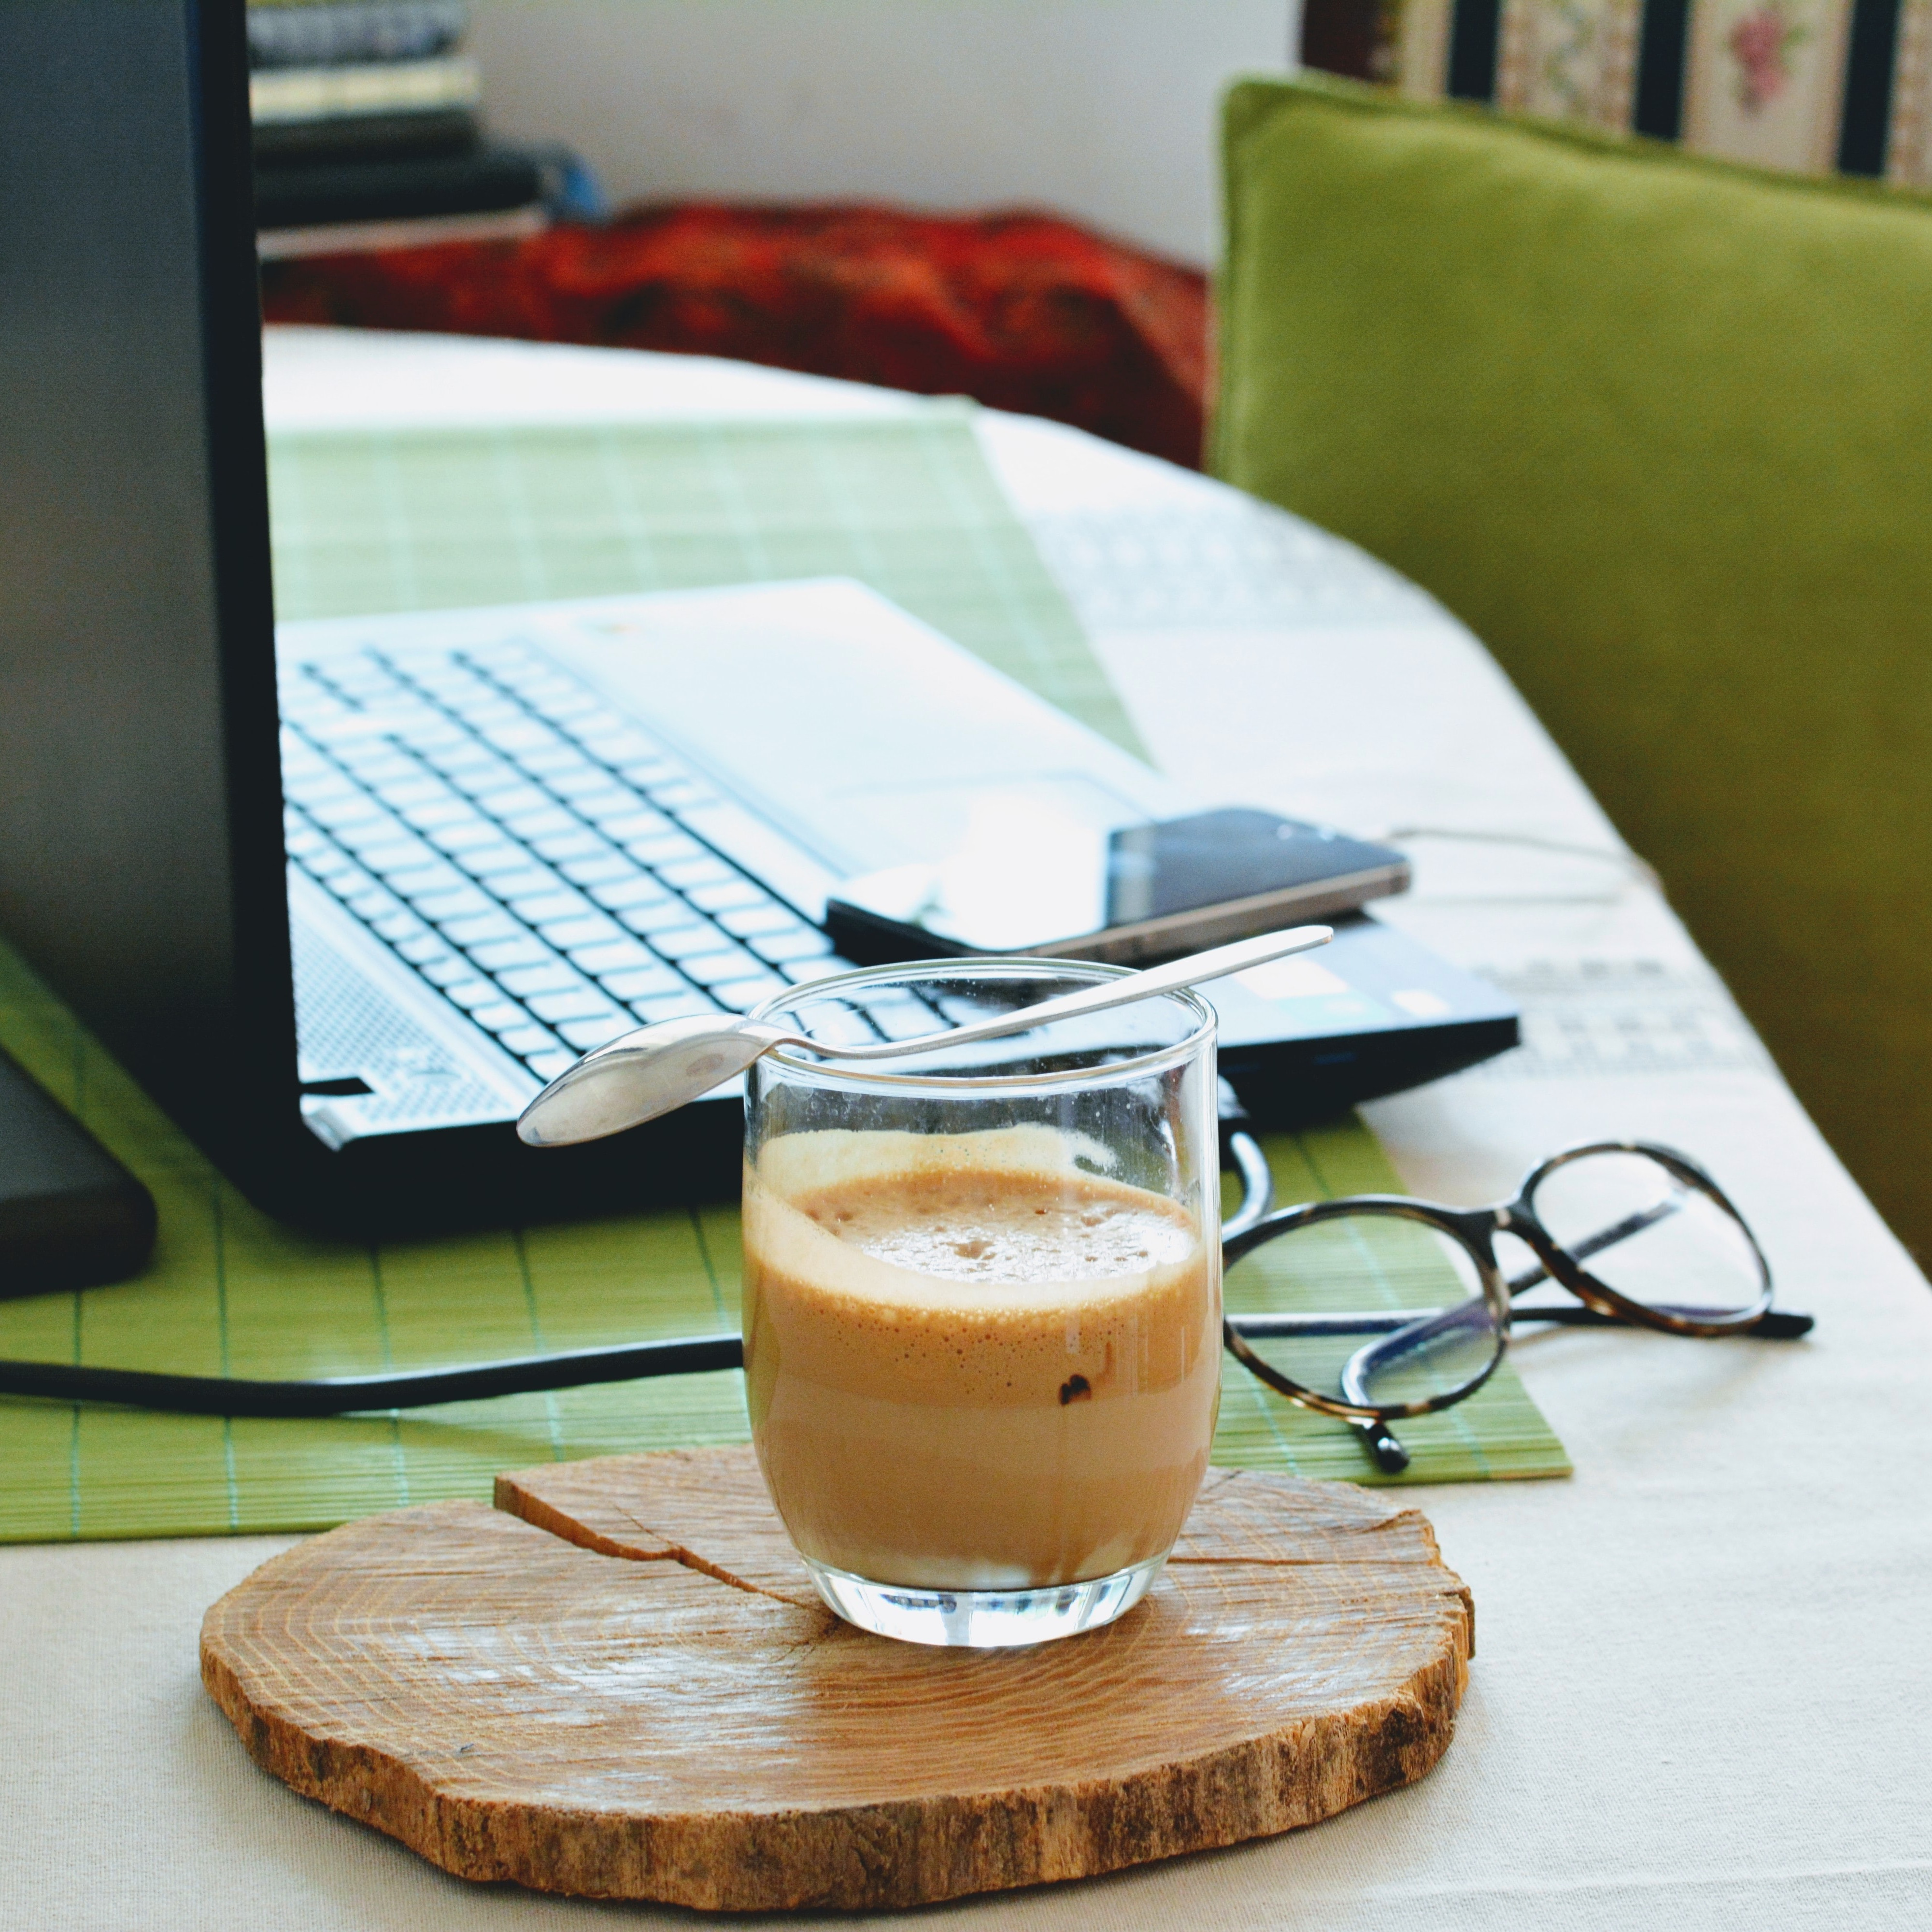 The 4 Evils: How companies screw up work-from-home